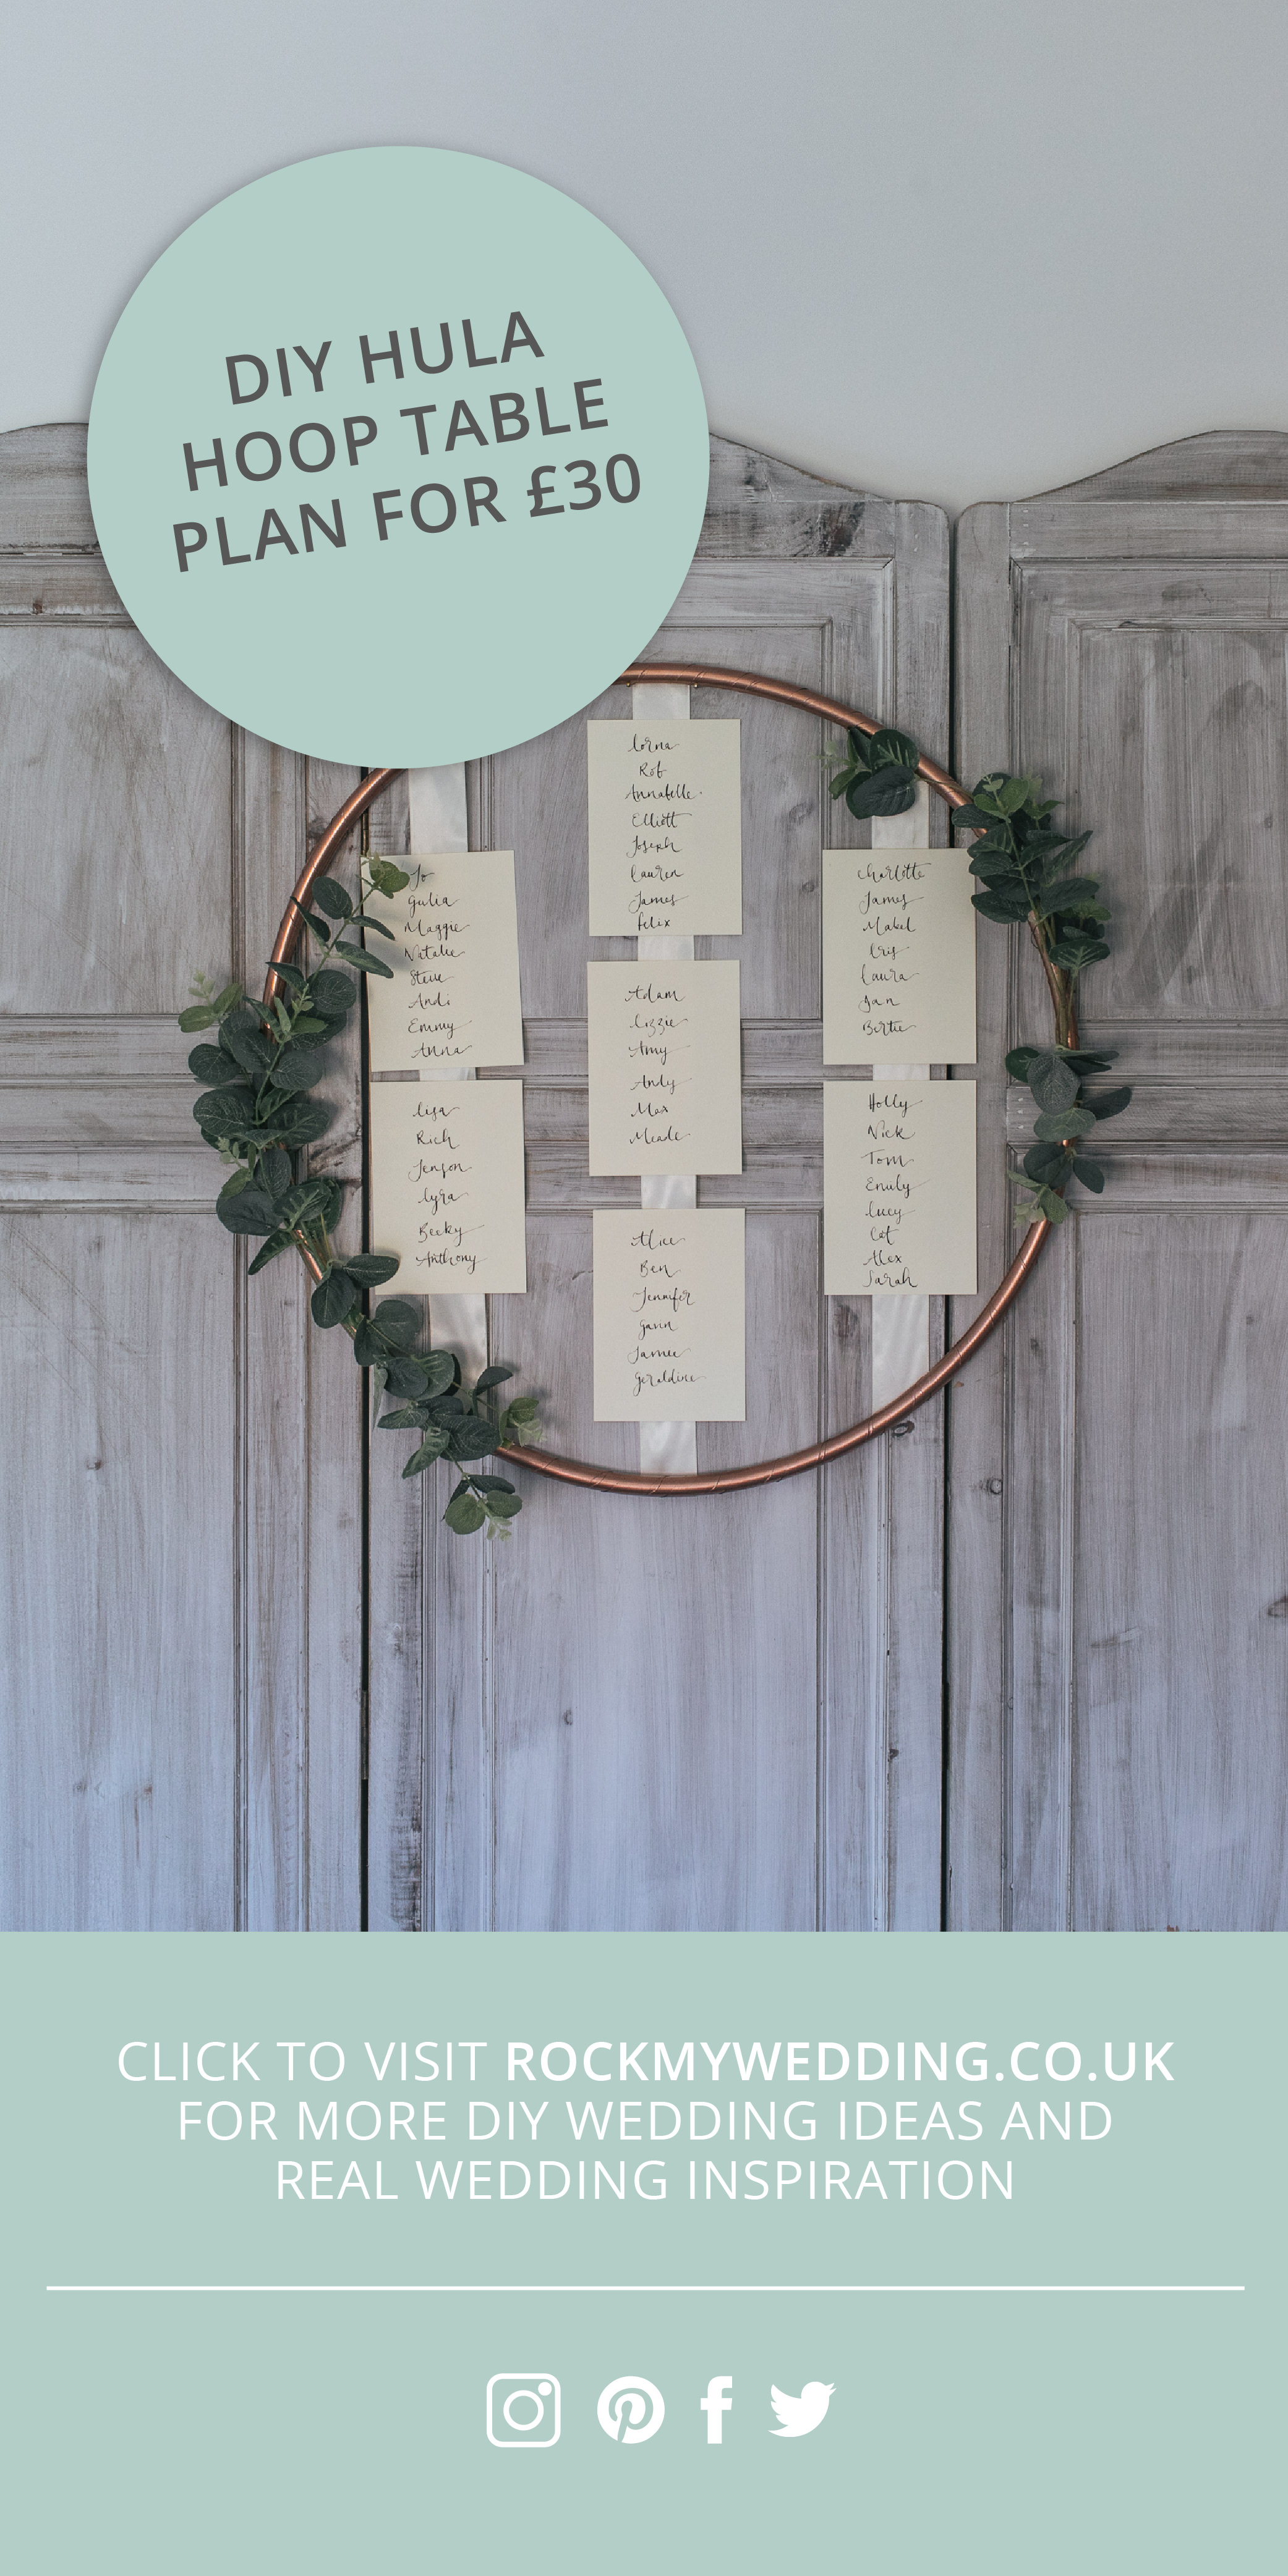 DIY Copper Spray Painted Hula Hoop Table Plan for £30